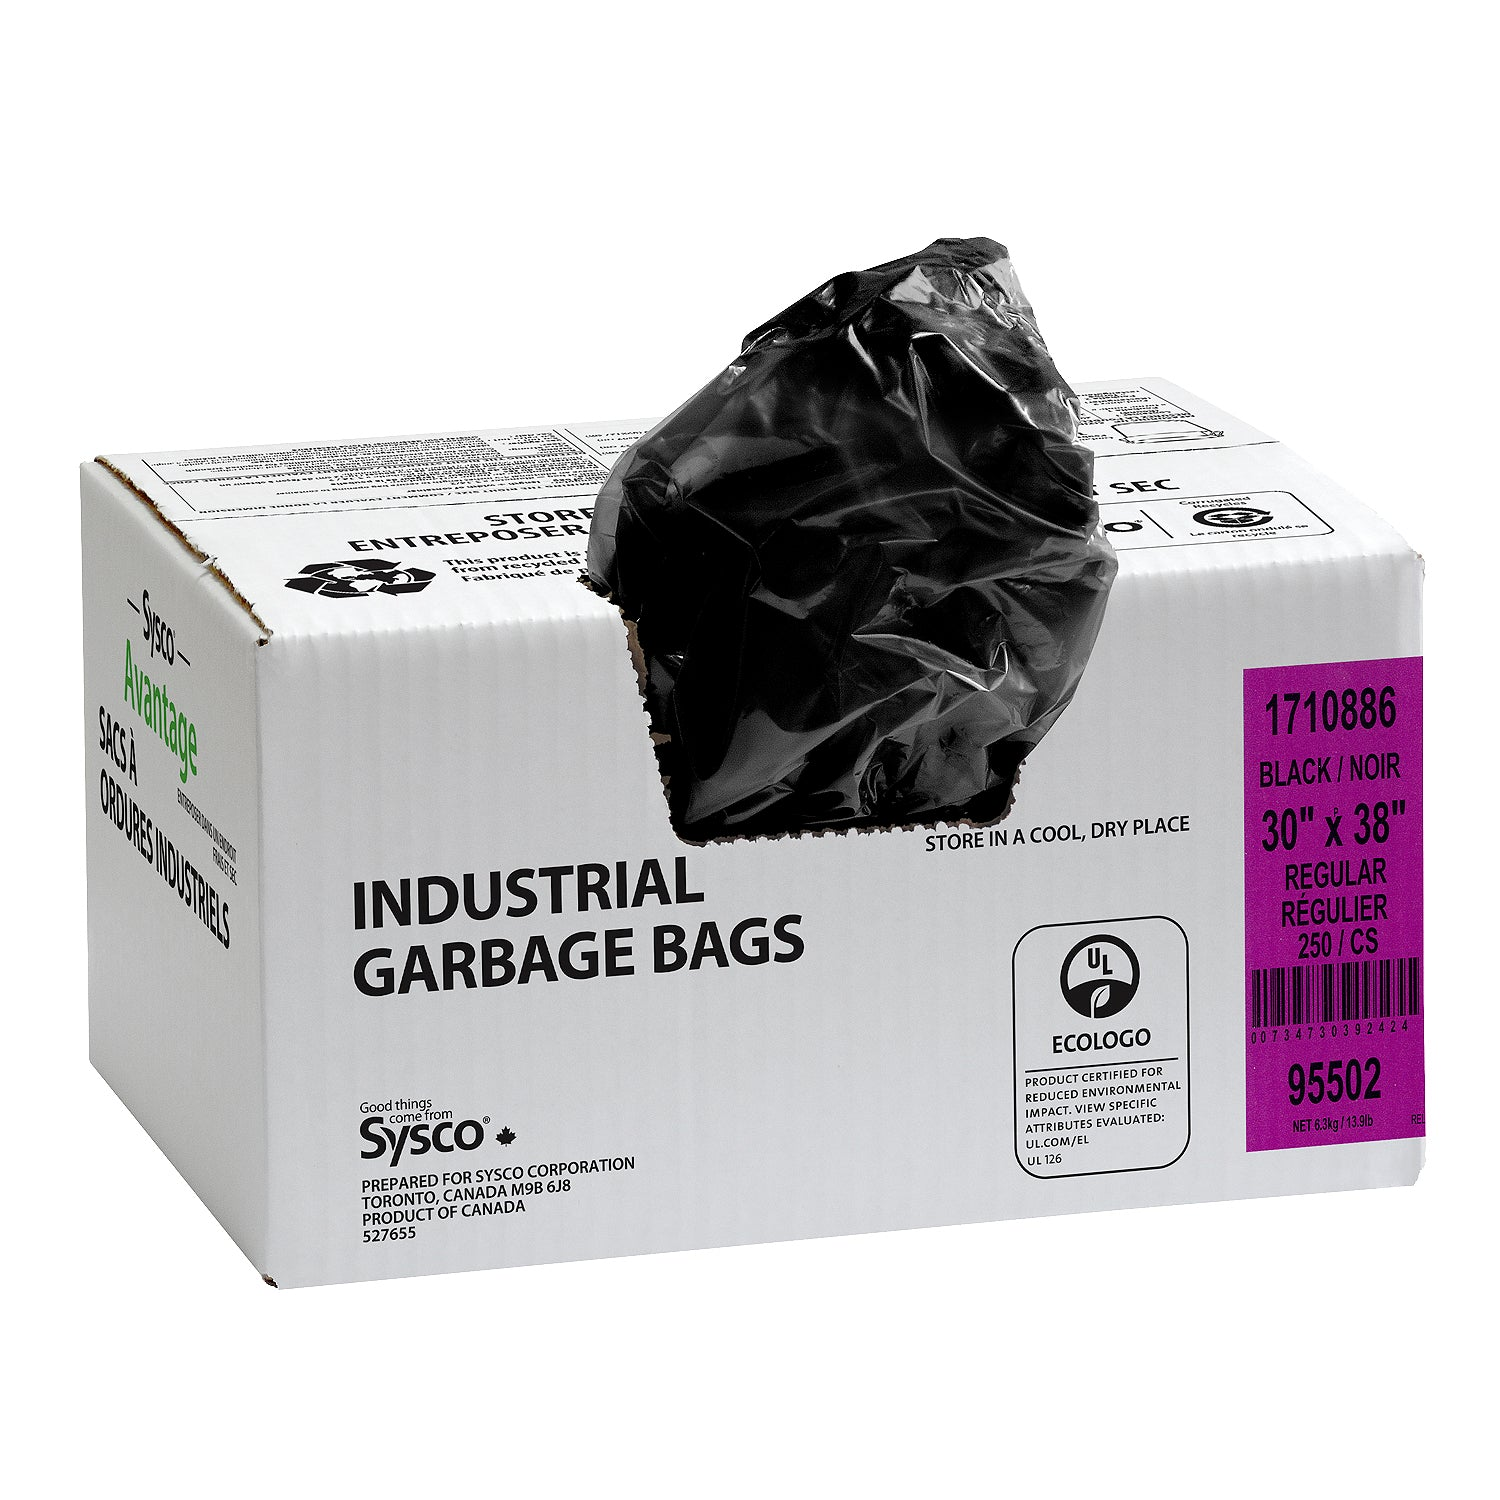 Sysco Reliance Regular Black Garbage Bags 30x38 - 250 Pack [$0.11/each]